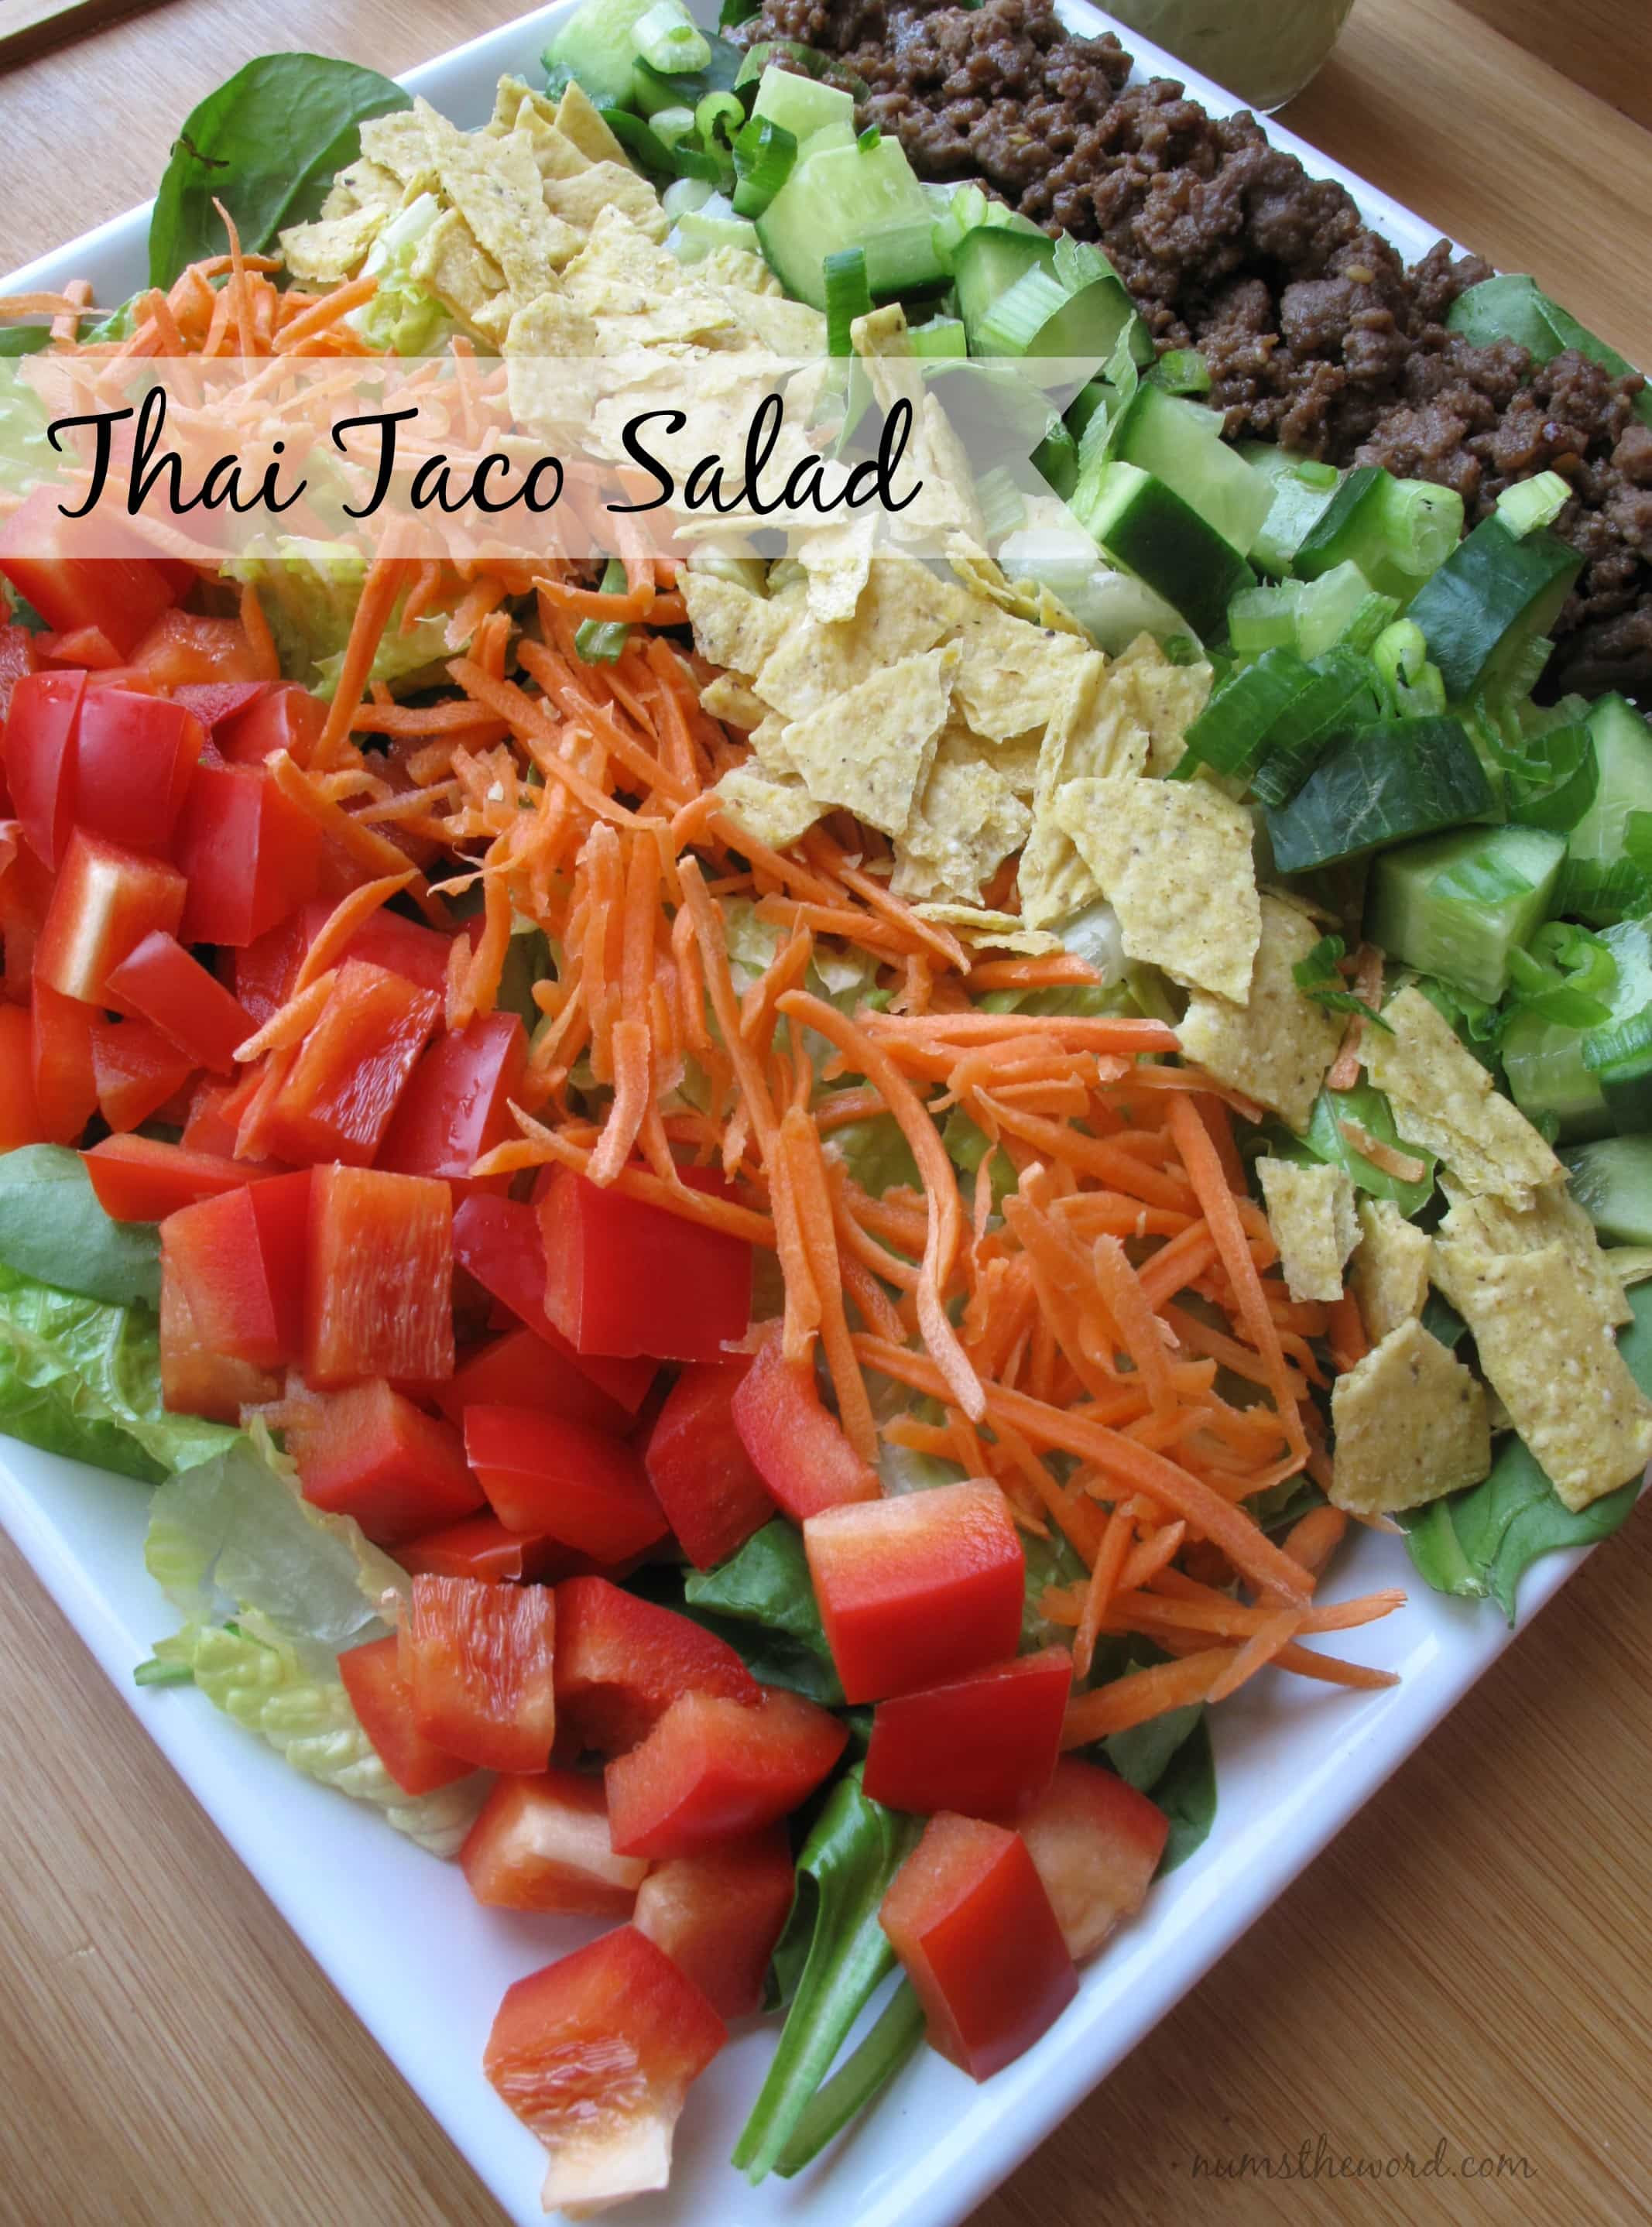 Thai Taco Salad- 17 Healthy Salads That Don't Taste Like Rabbit Food. serenabakessimplyfromscratch.com